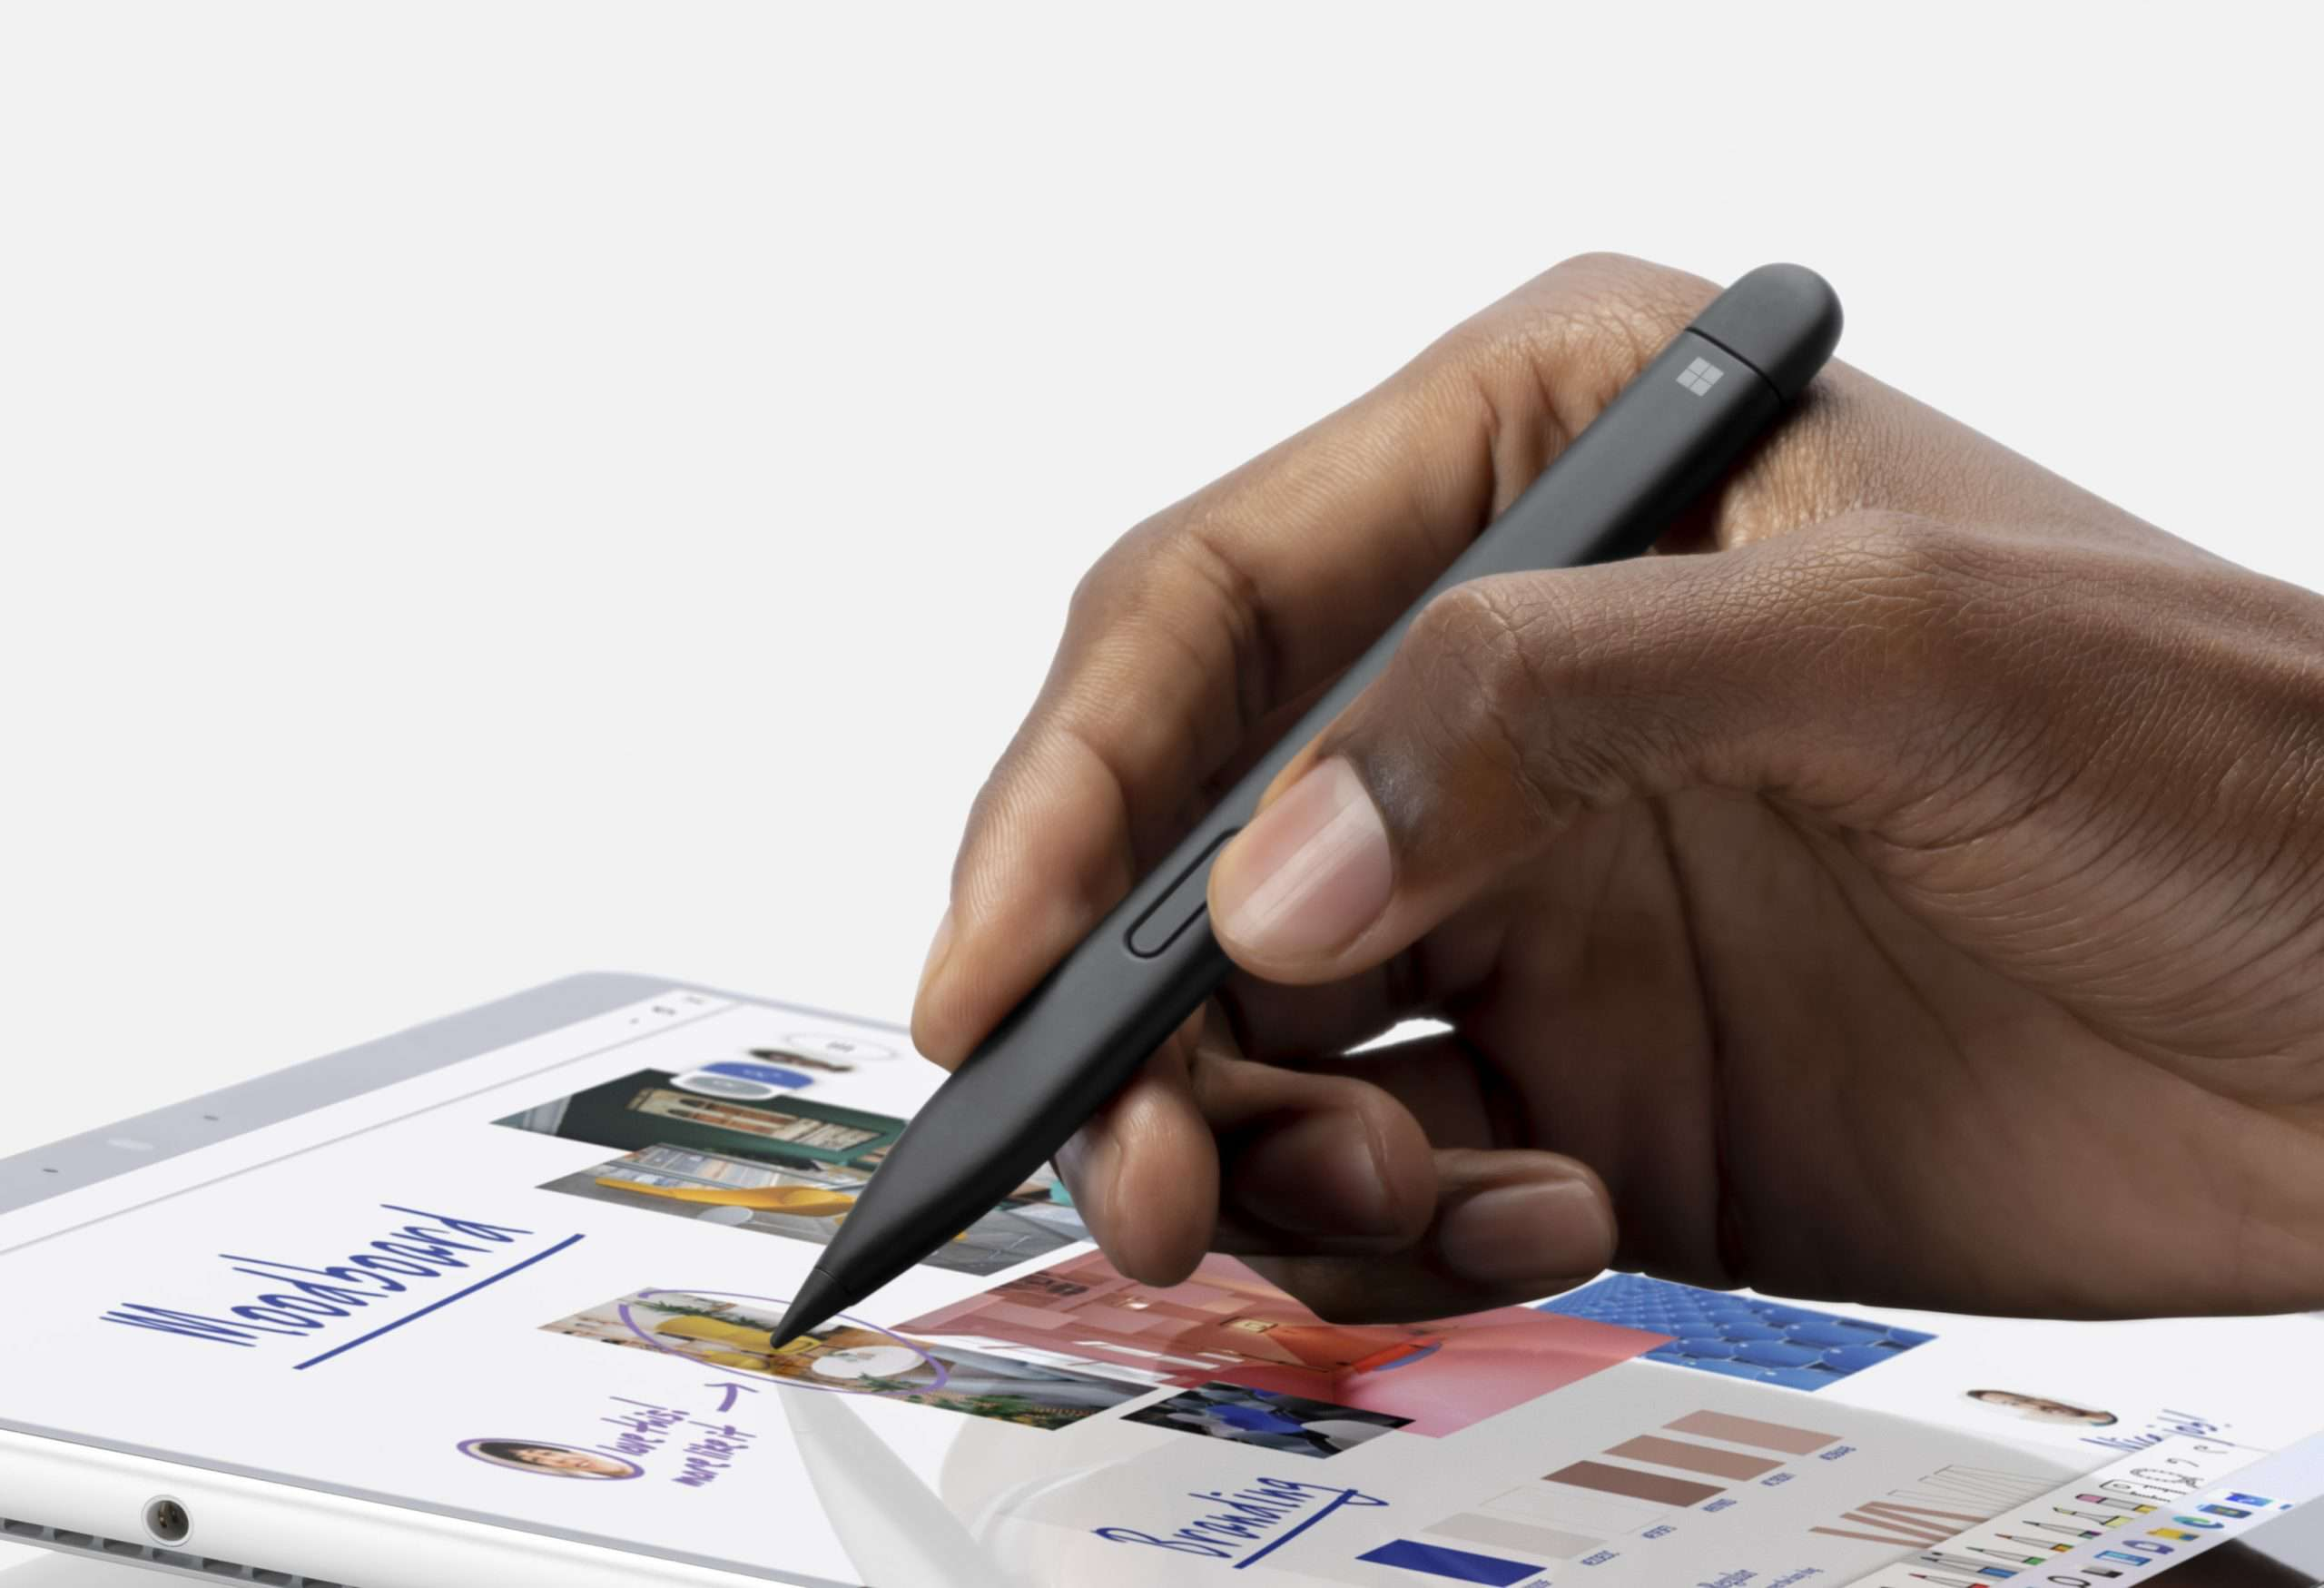 The Microsoft Surface Pen 2